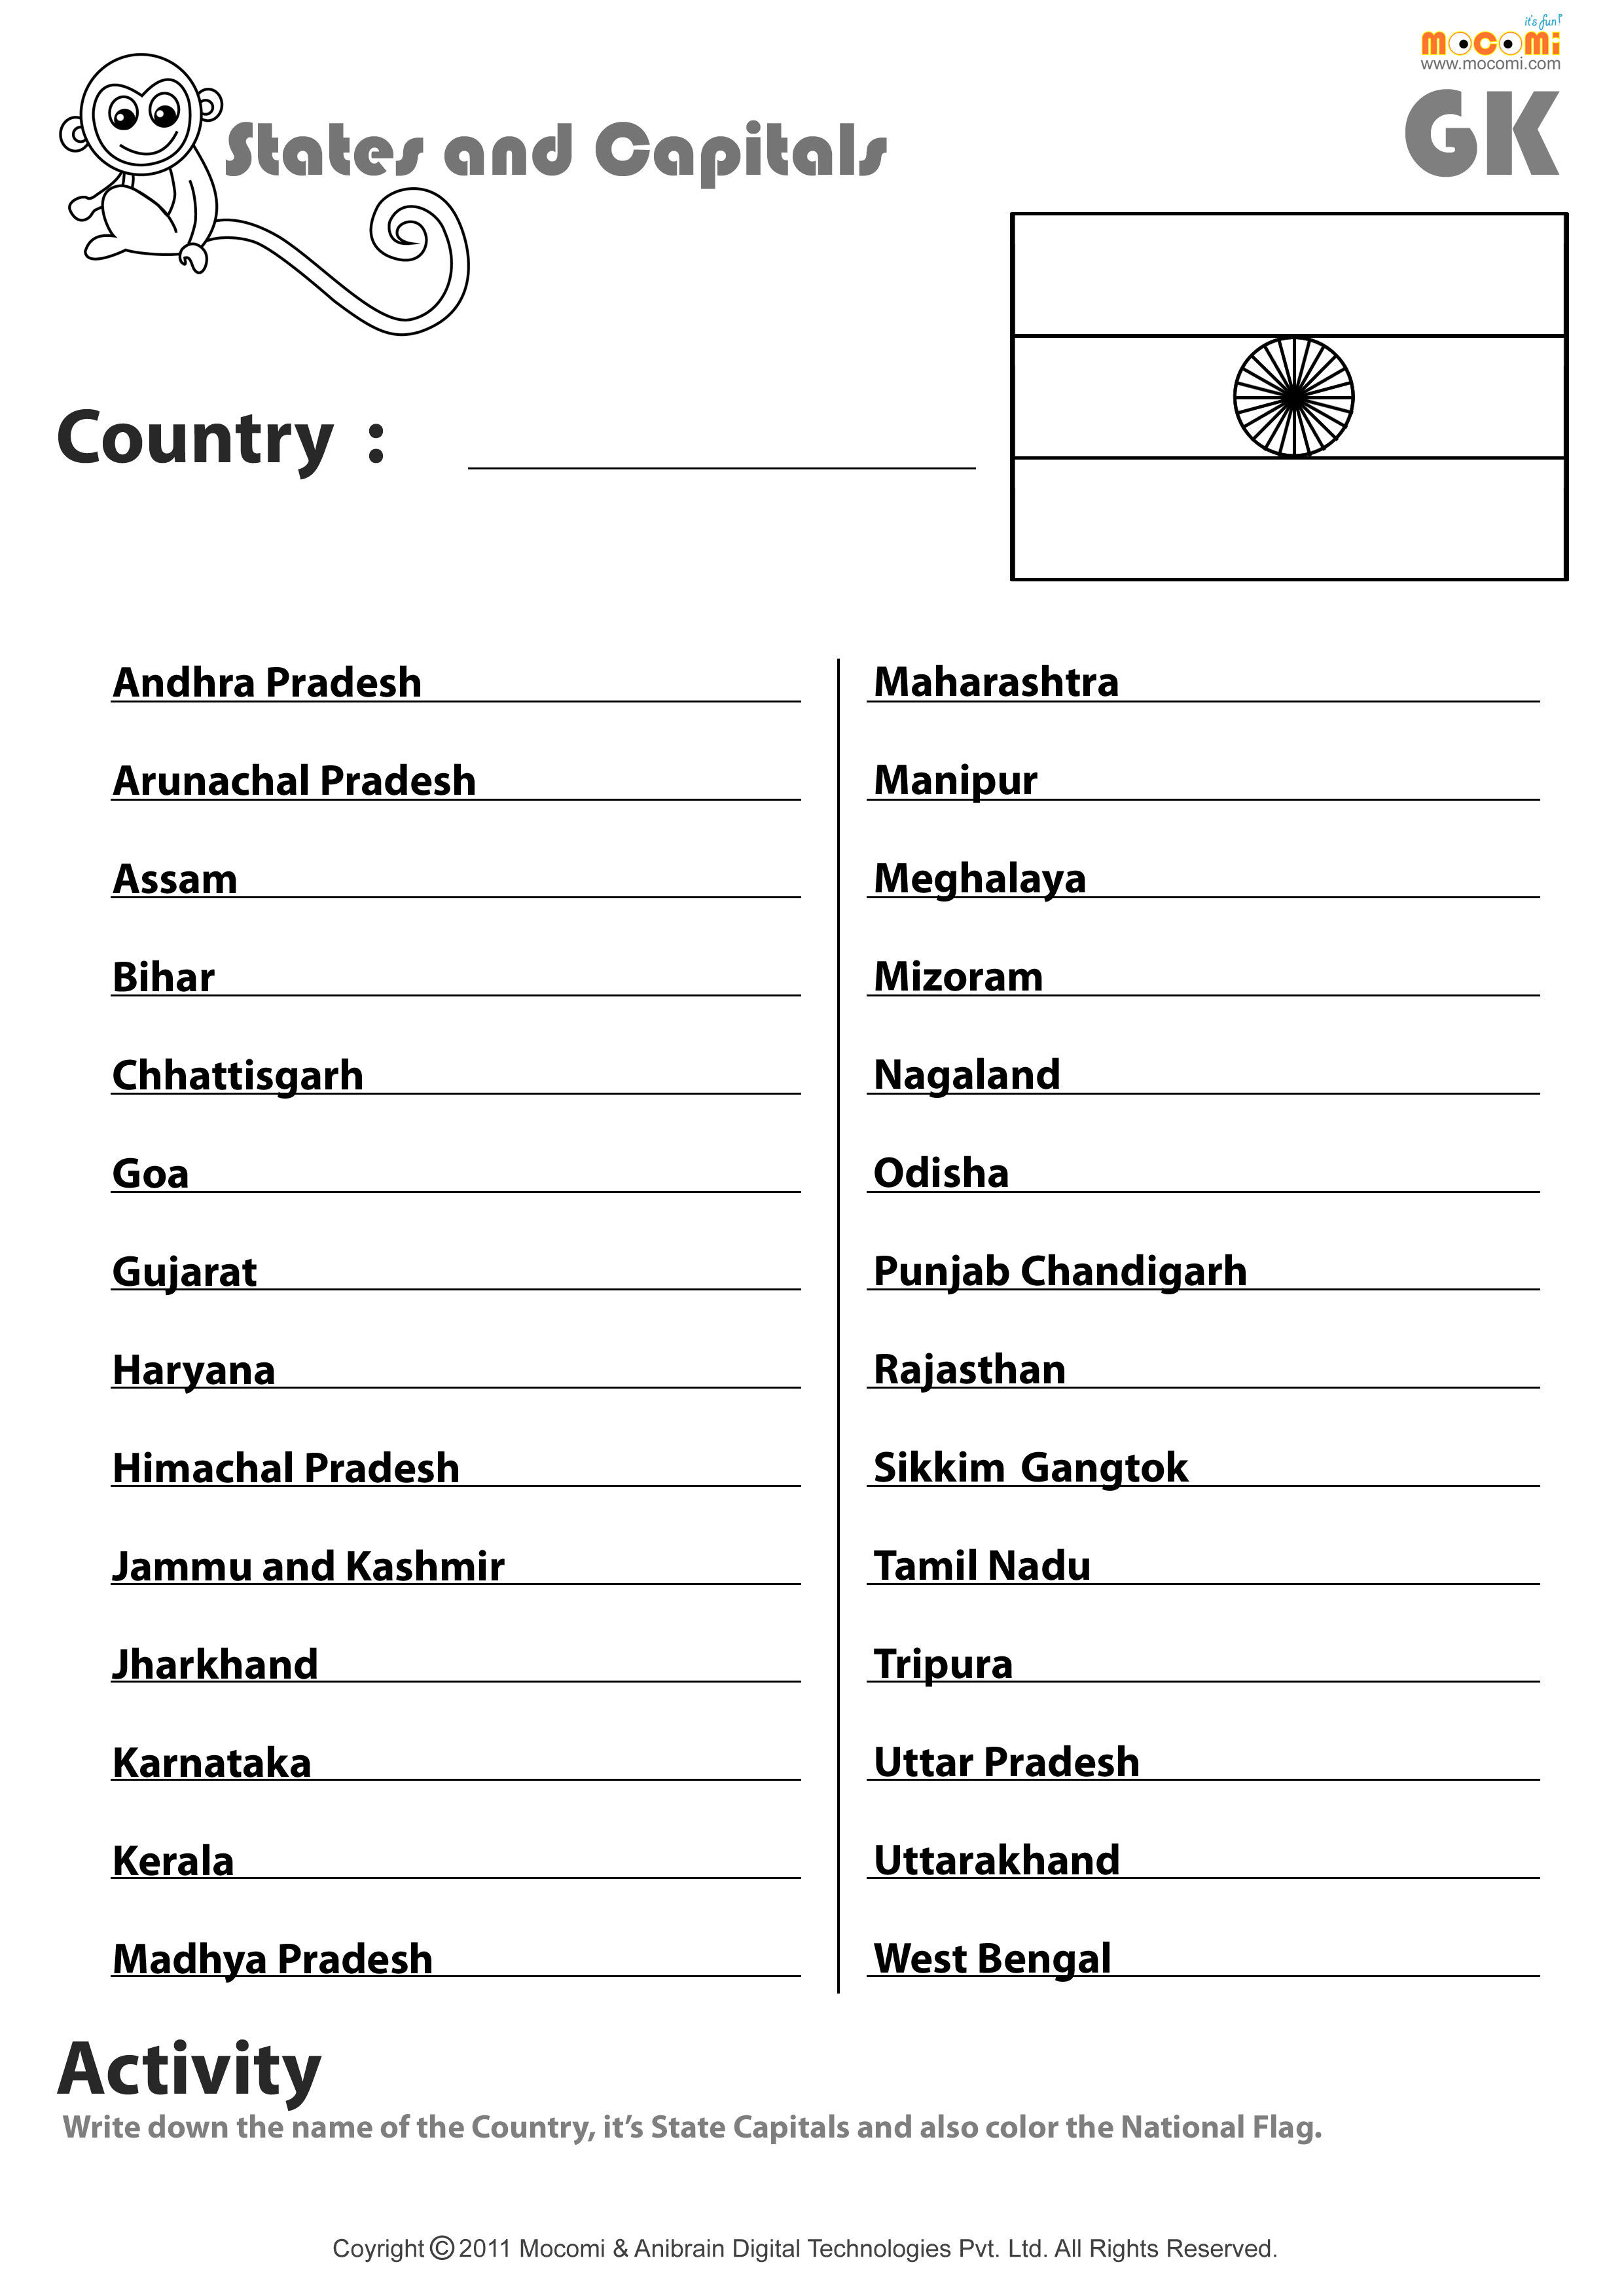 Indian States And Their Capitals - English Worksheets For Kids | Mocomi - Free Printable States And Capitals Worksheets